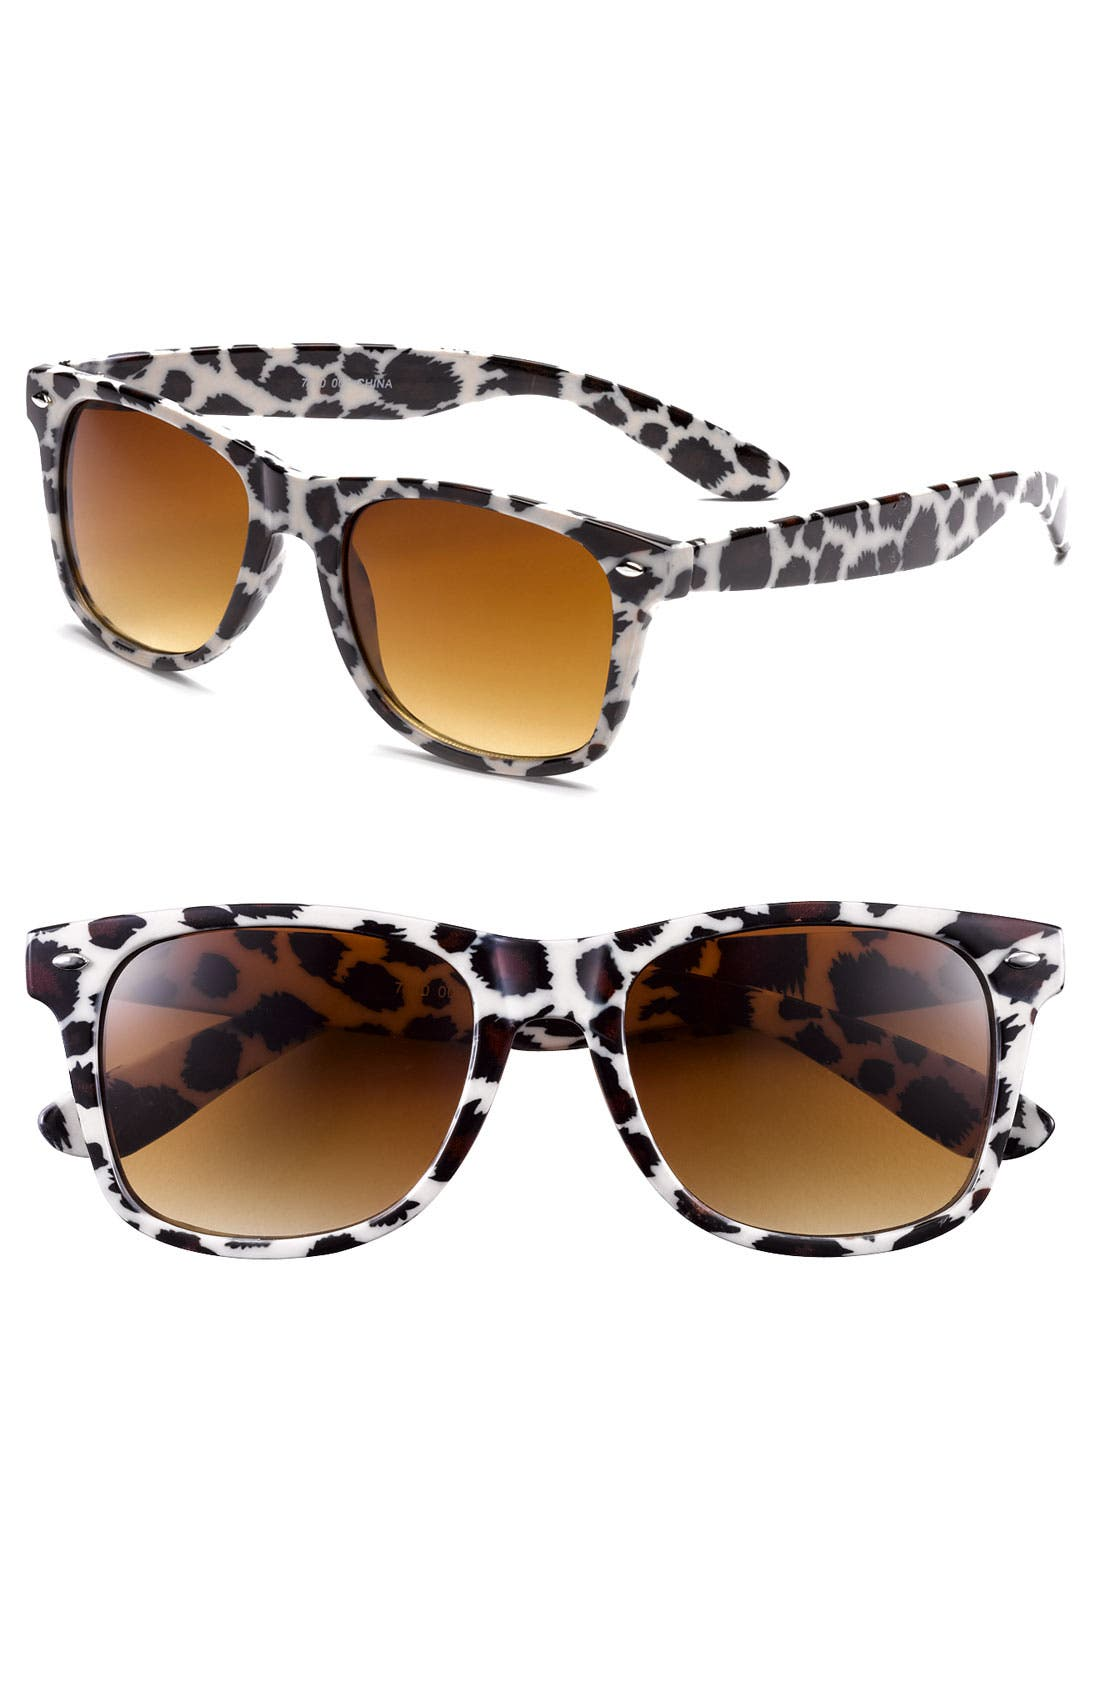 Alternate Image 1 Selected - KW 'Punky' Sunglasses (2 for $20)